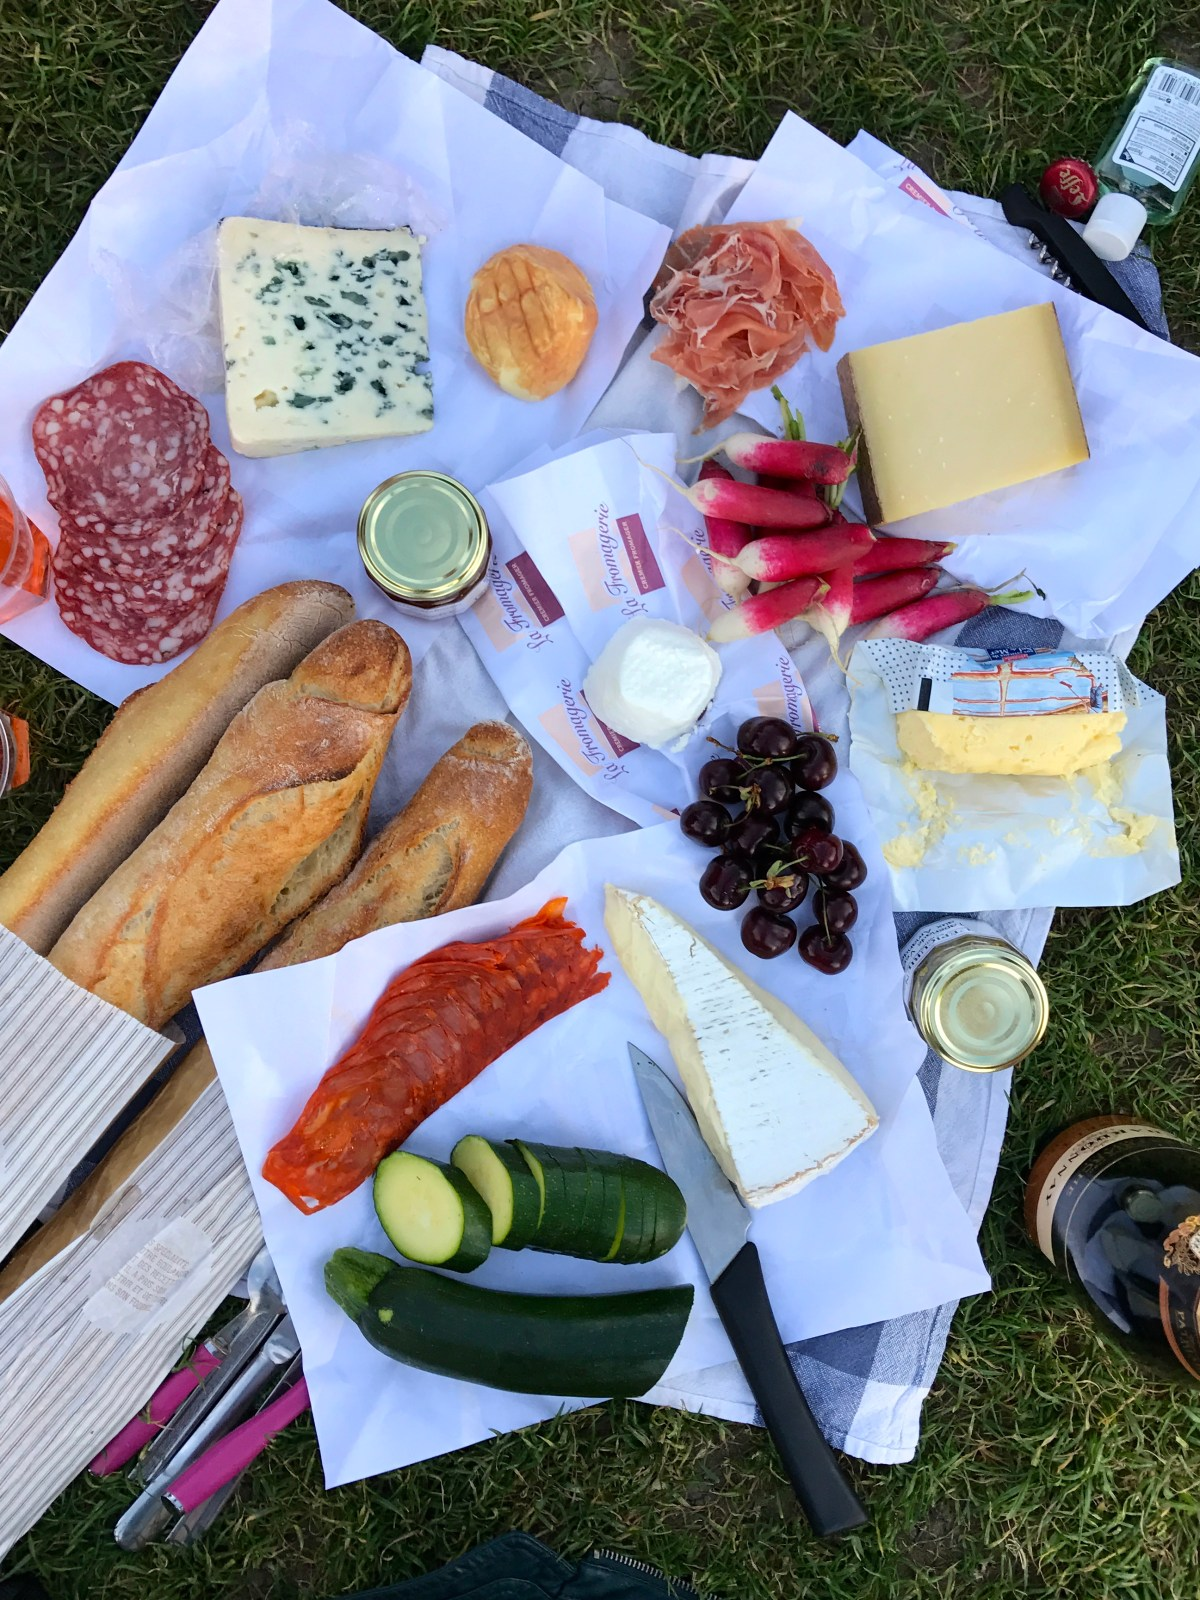 Garden Radishes with Sea Salt and Butter - Parisian picnic in front of the Eiffel tower with baguette, cheese, prosciutto, sea salted butter, radishes, and zucchini